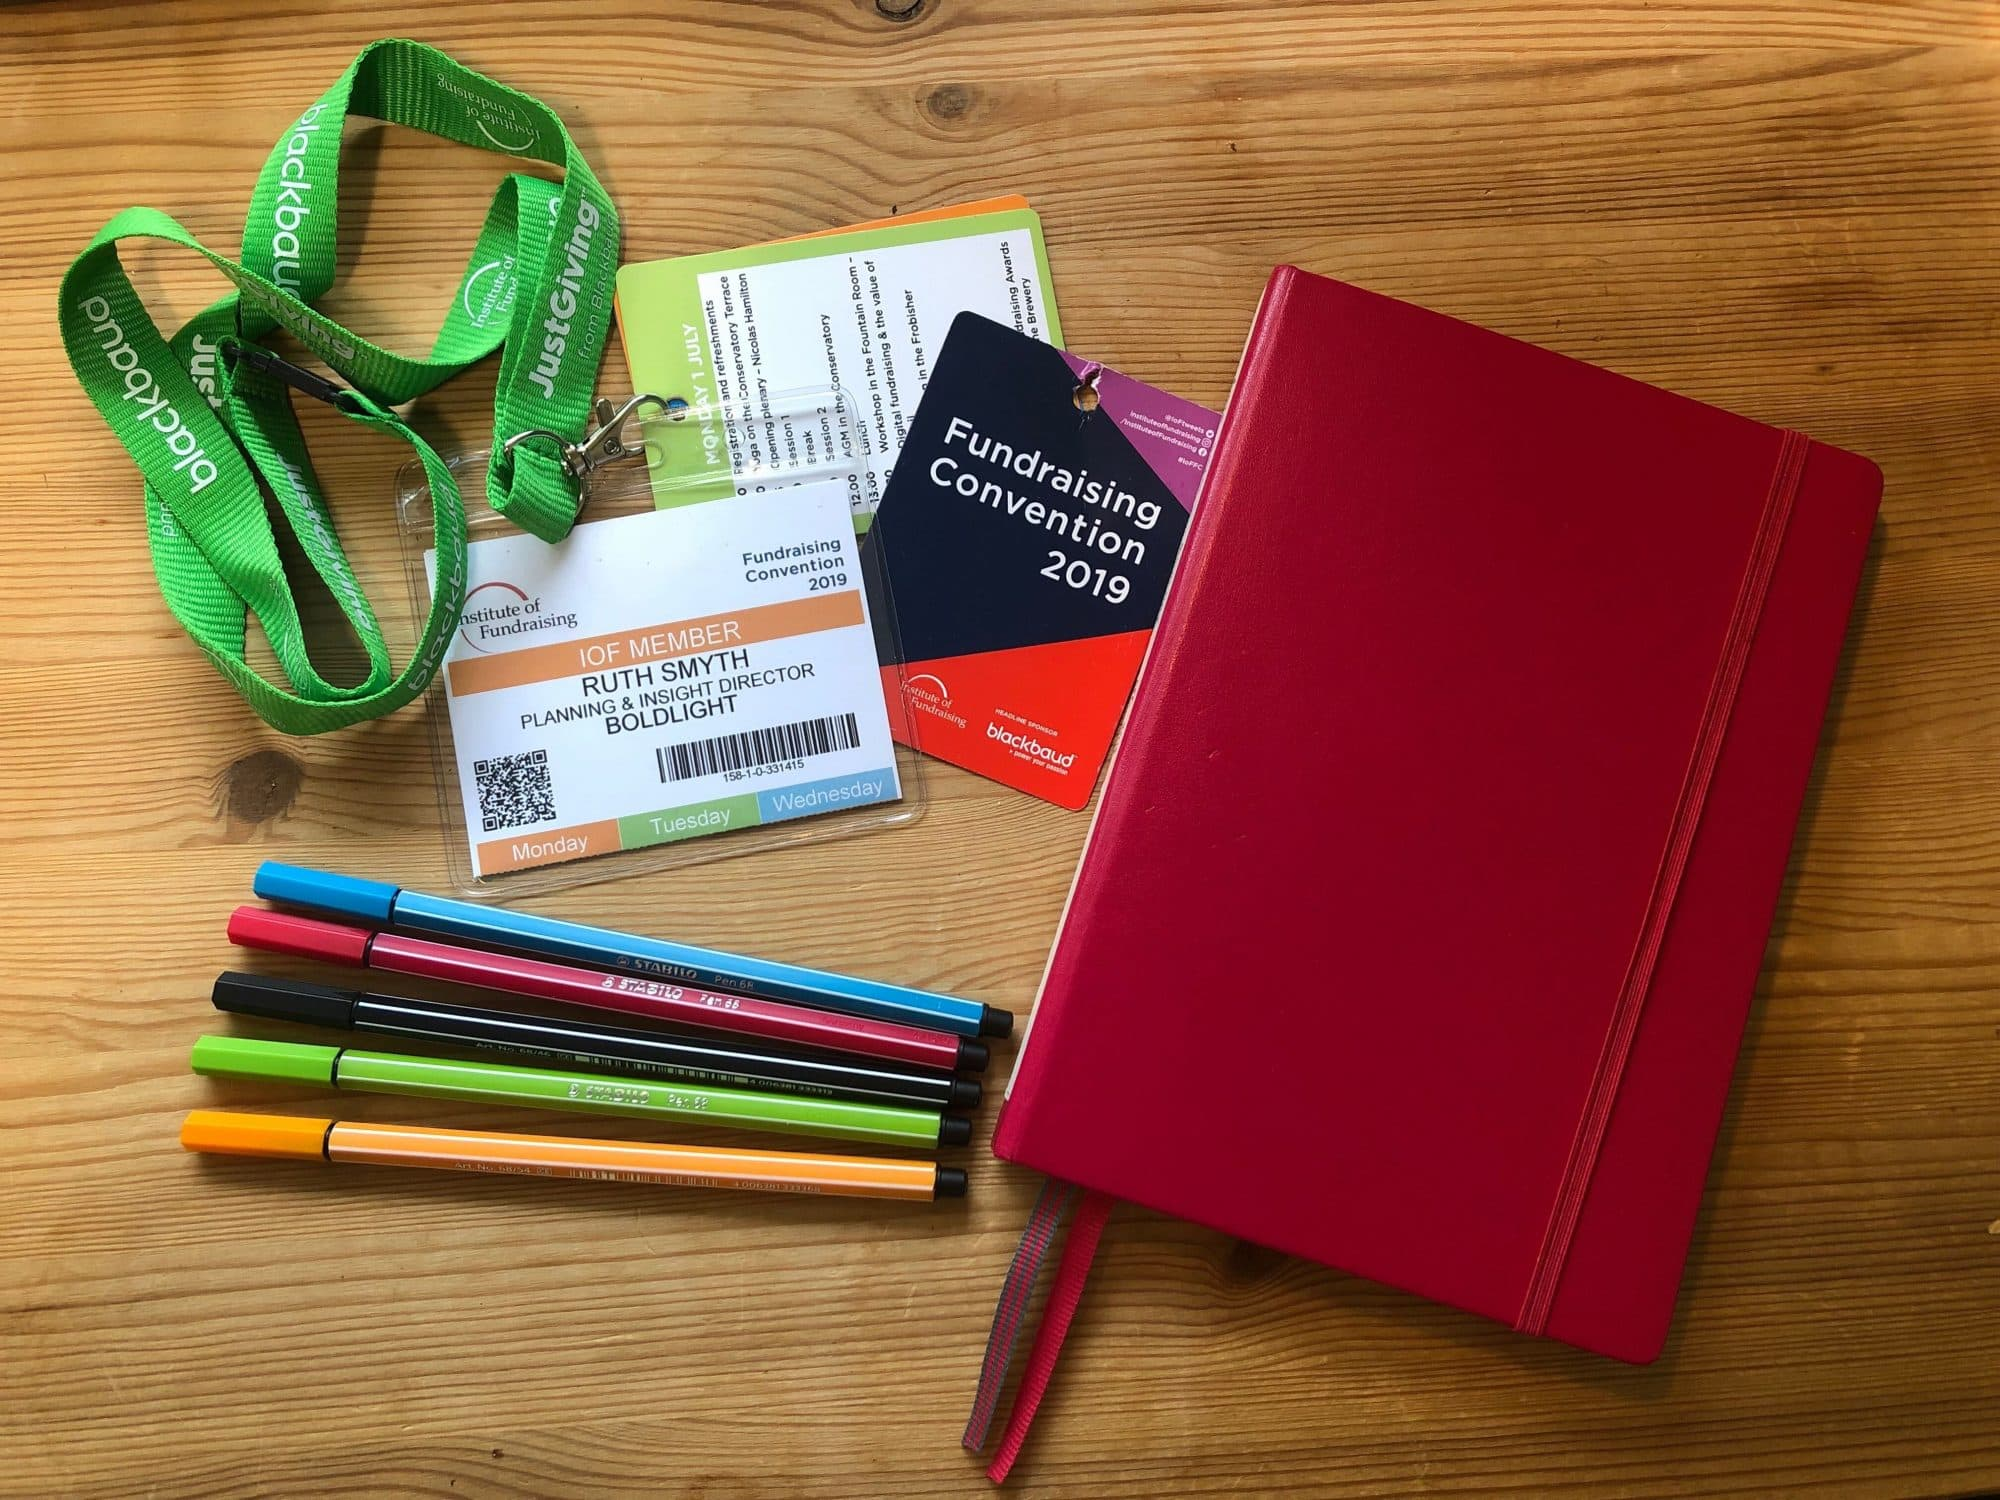 Fundraising convention badge, notebook and pens